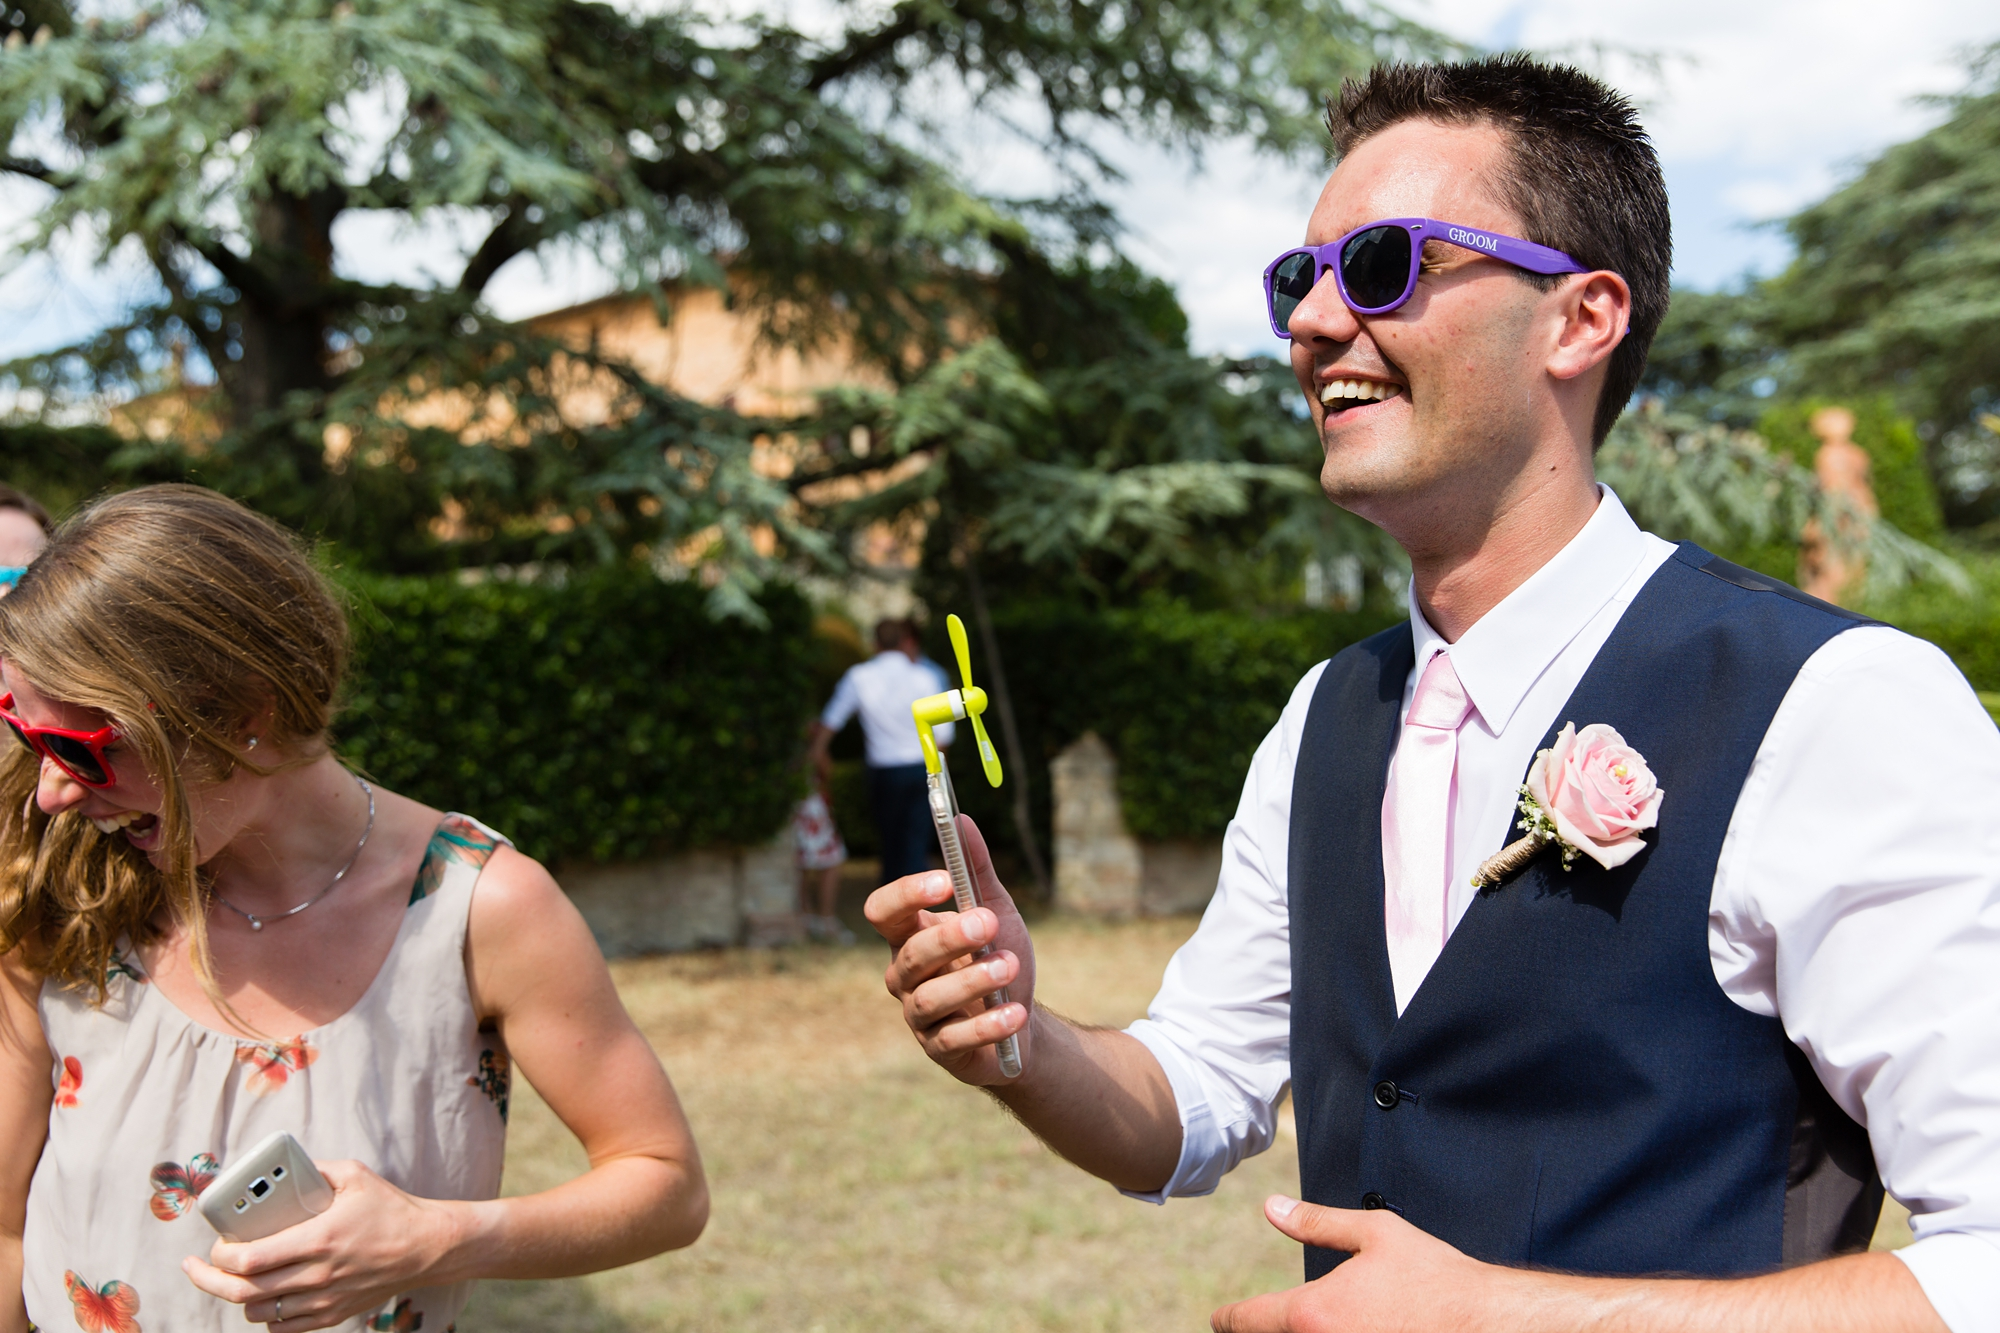 Villa Catignano Siena Wedding Photography groom in sunglasses with portable fan